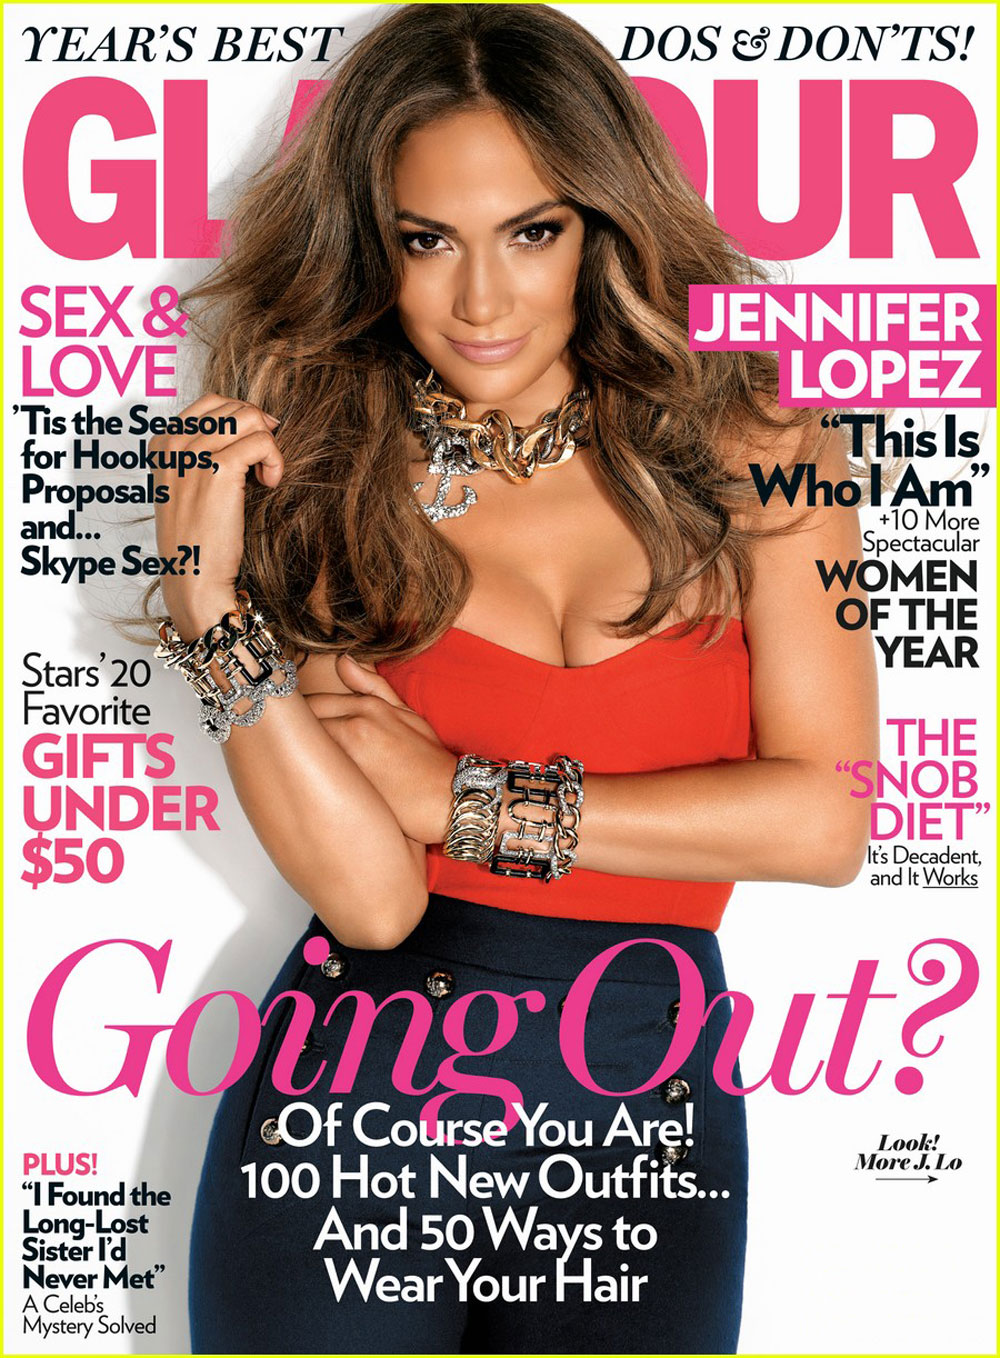 Editorial Glamour Makeup Professional Makeup Artist: Jennifer Lopez In Glamour Magazine, December 2011 Issue